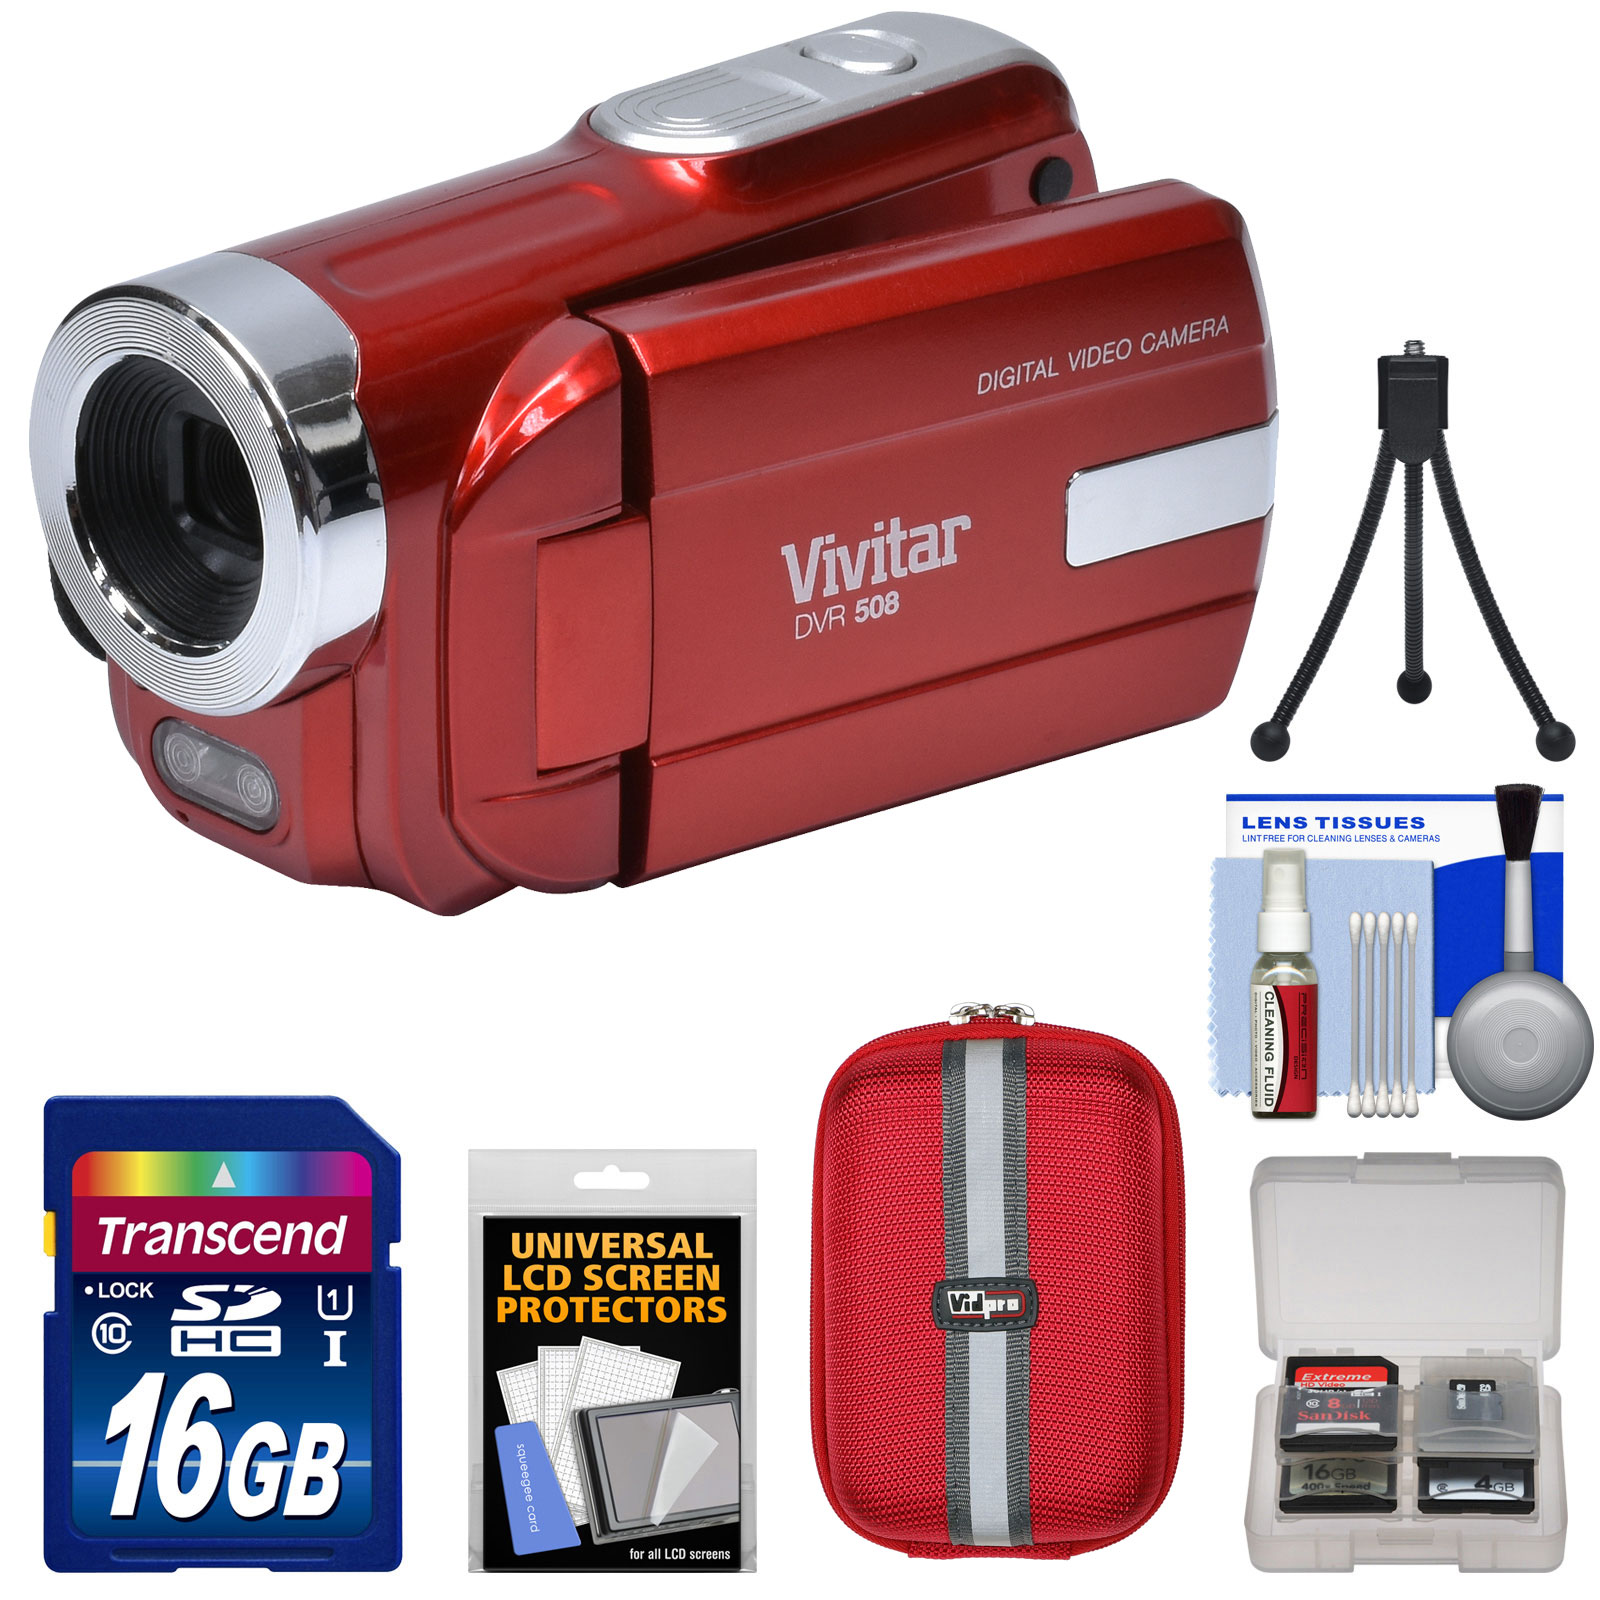 Vivitar DVR-508 HD Digital Video Camera Camcorder (Red) with 16GB Card + Case + Tripod + Kit